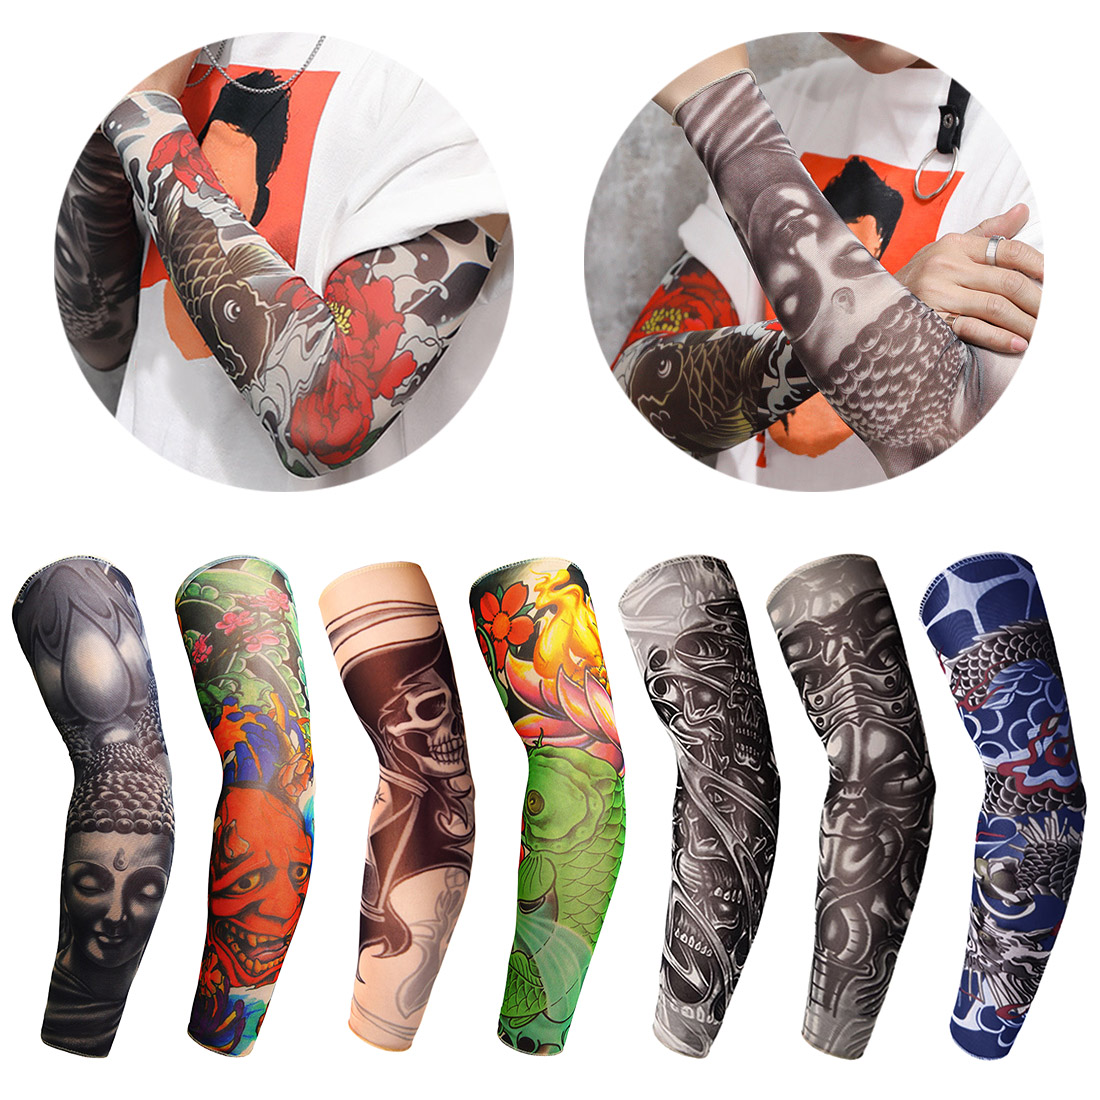 1Pc Nylon Tatoo Arm Stockings Arm Warmer Cover Elastic Fake Temporary Tattoo Sleeves For Men Women New Arrival Tattoo Sleeve